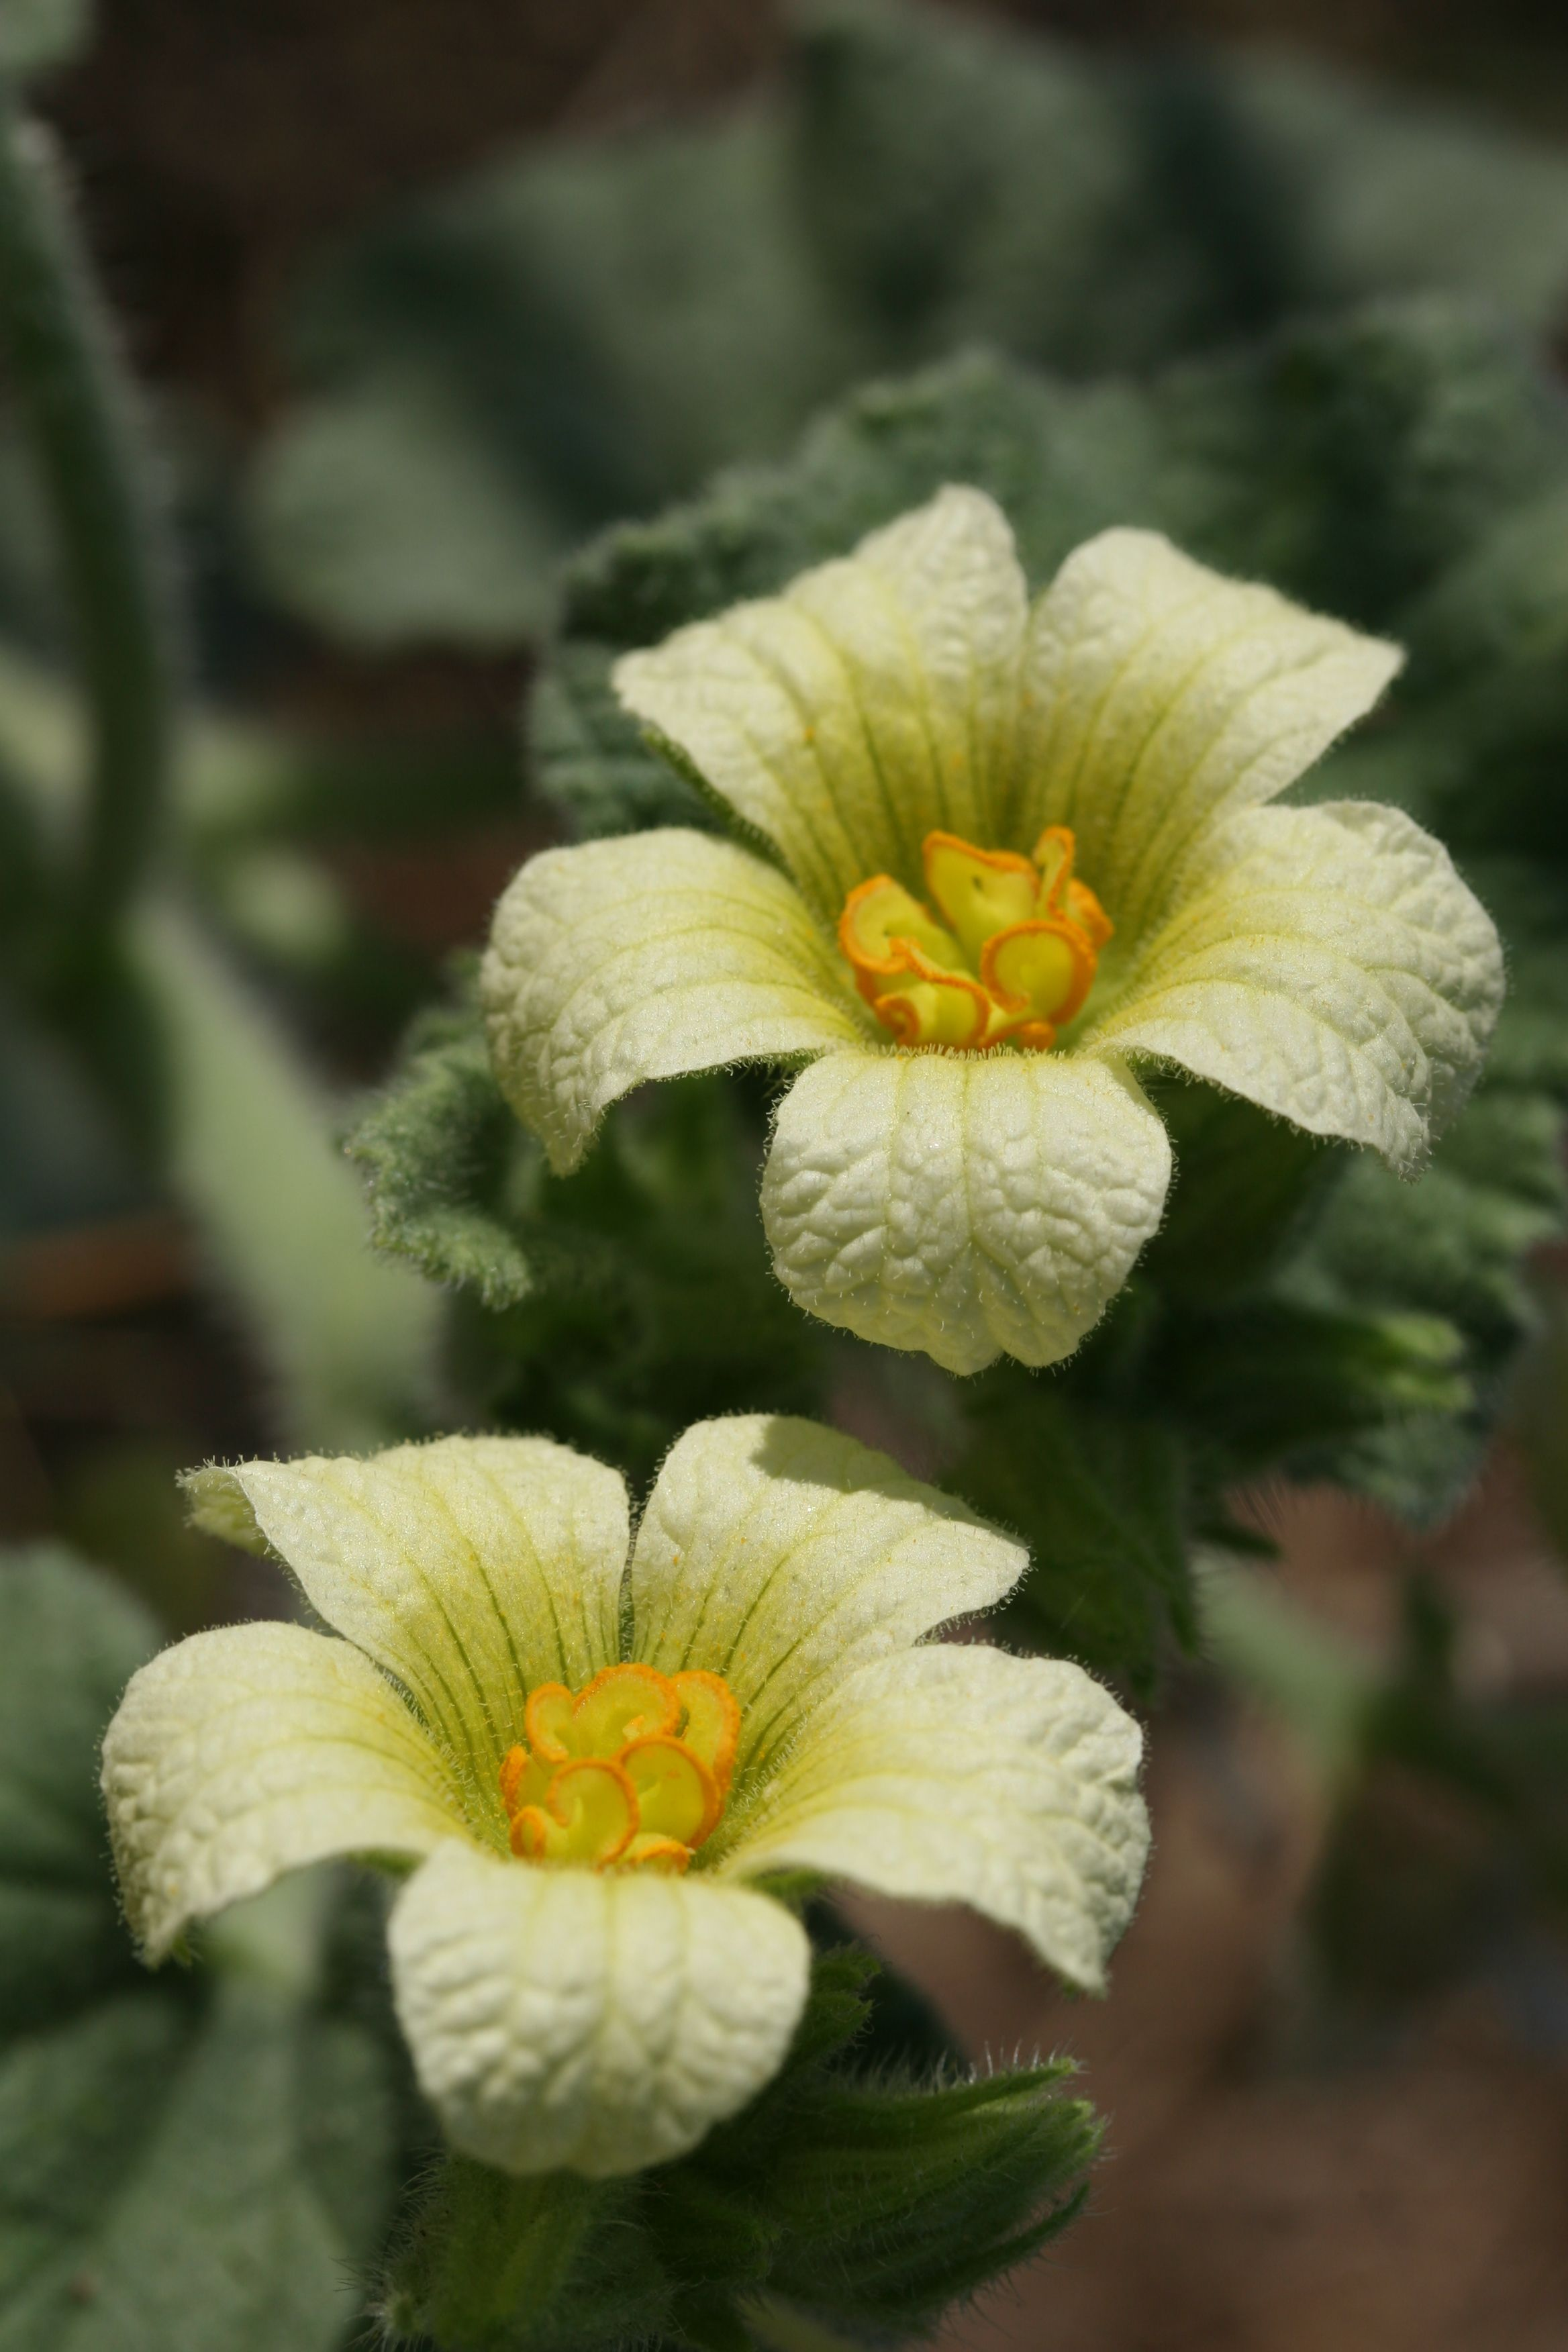 Unidentified Yellow Ground Flower Weed Southern Spain In The